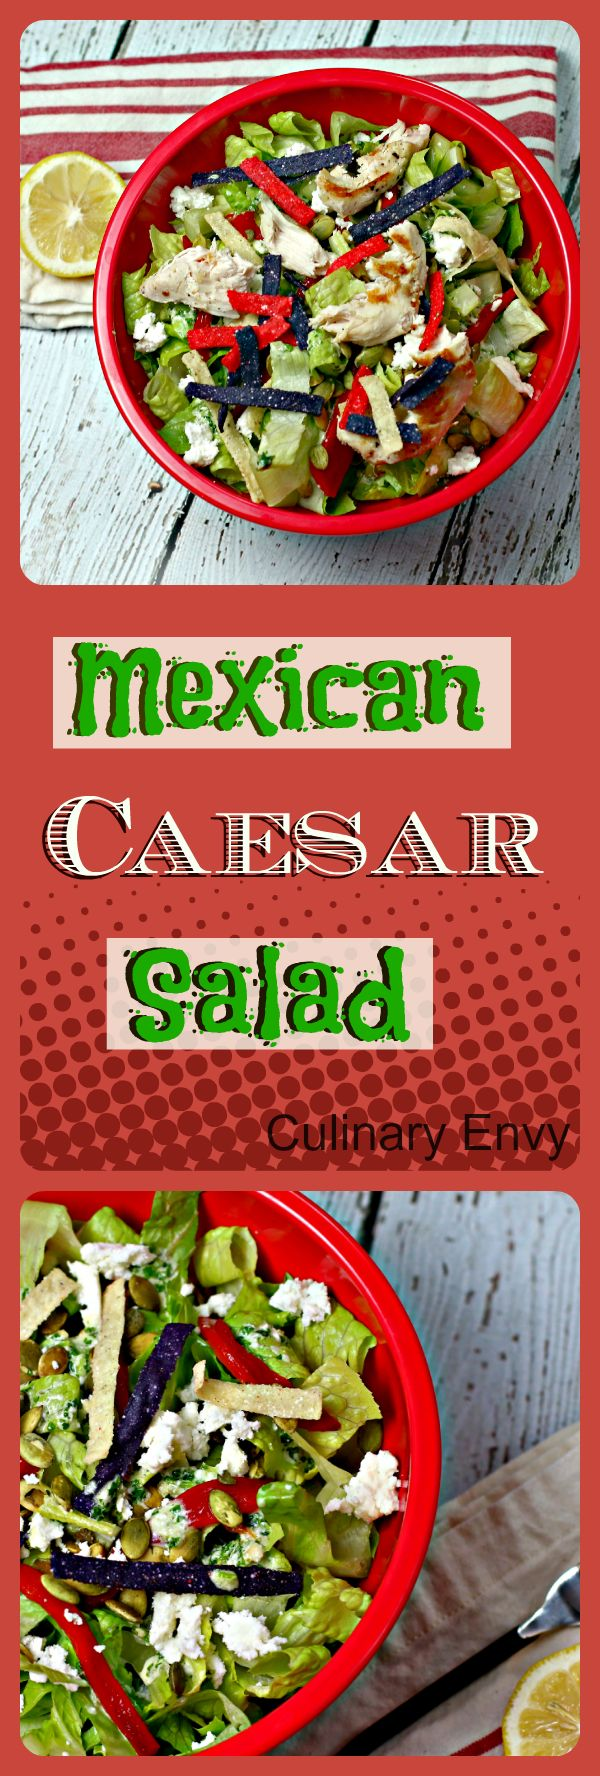 Mexican Caesar Salad is crisp, bright and refreshing.  Incredible tangy herb dressing with roasted pumpkin seeds and crunchy tortilla strips on top. Delish!